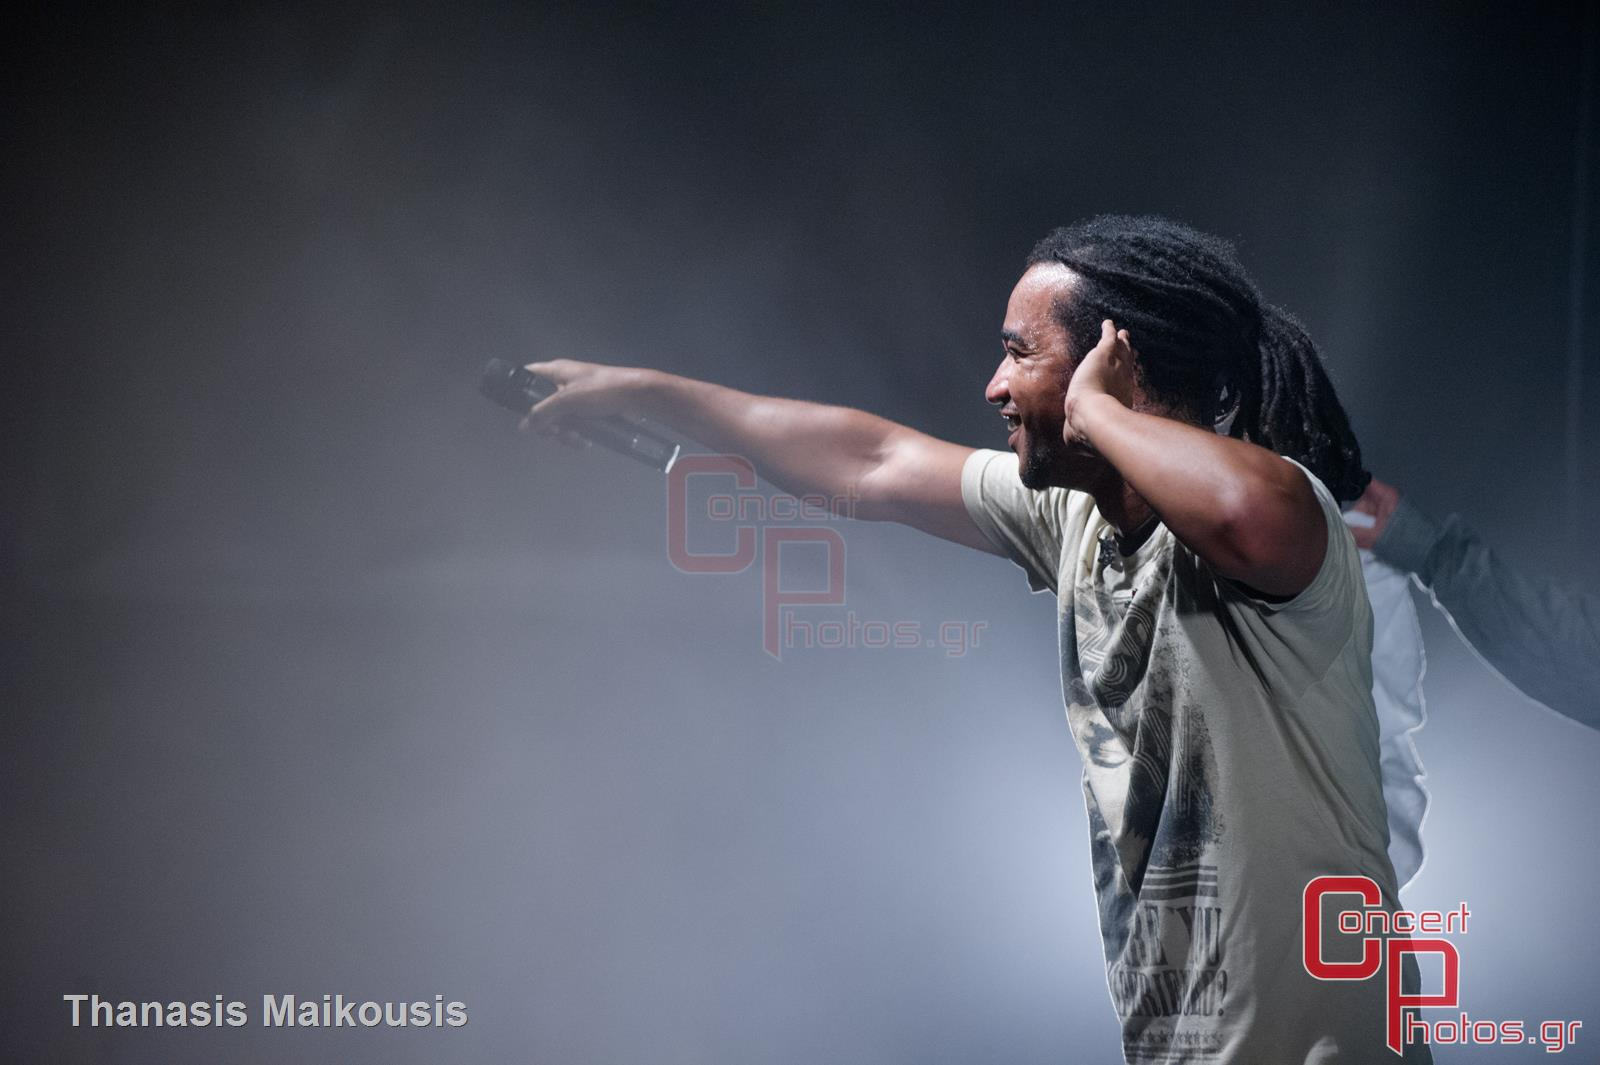 Dub Inc-Dub Inc photographer: Thanasis Maikousis - concertphotos_-5518